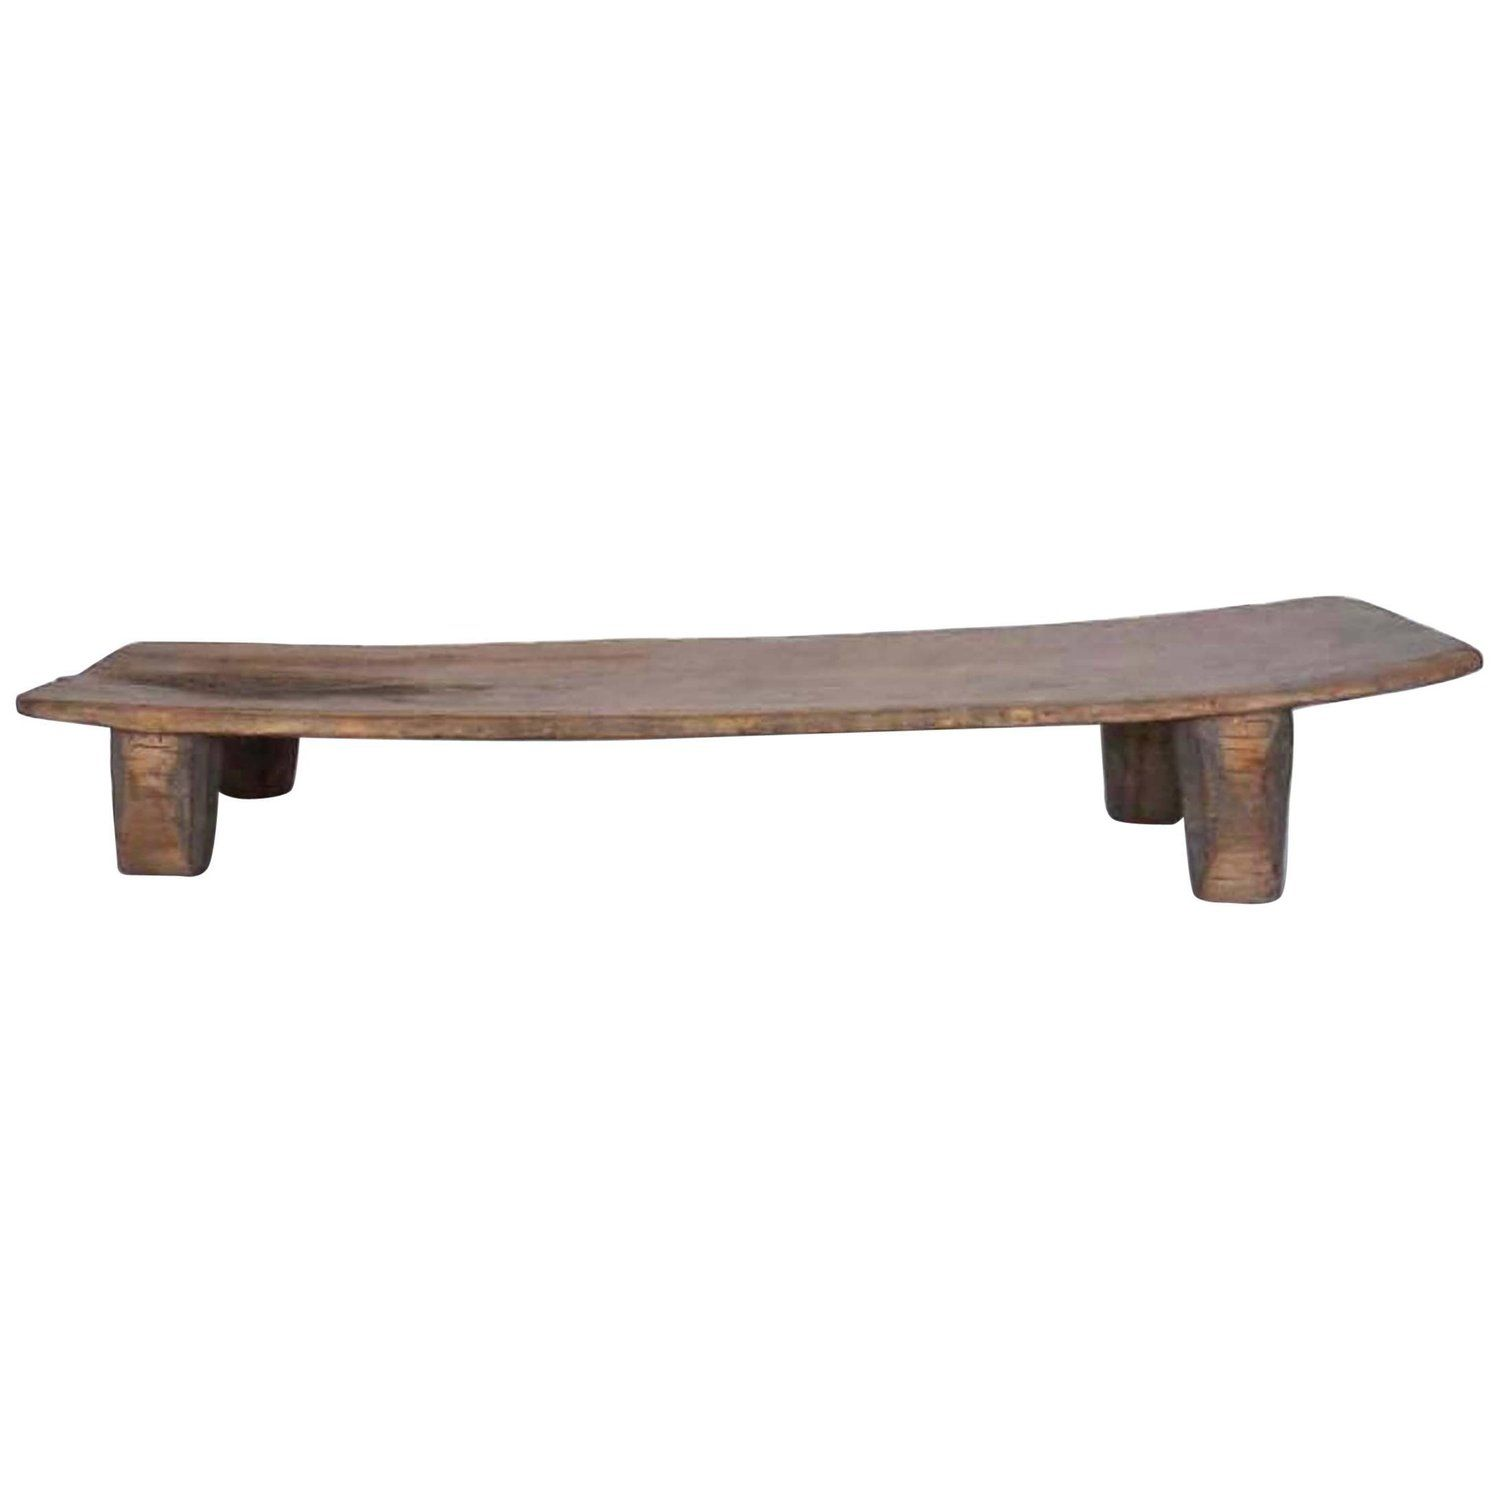 Antique African Nupe Childs Bed, Coffee Table Or Bench